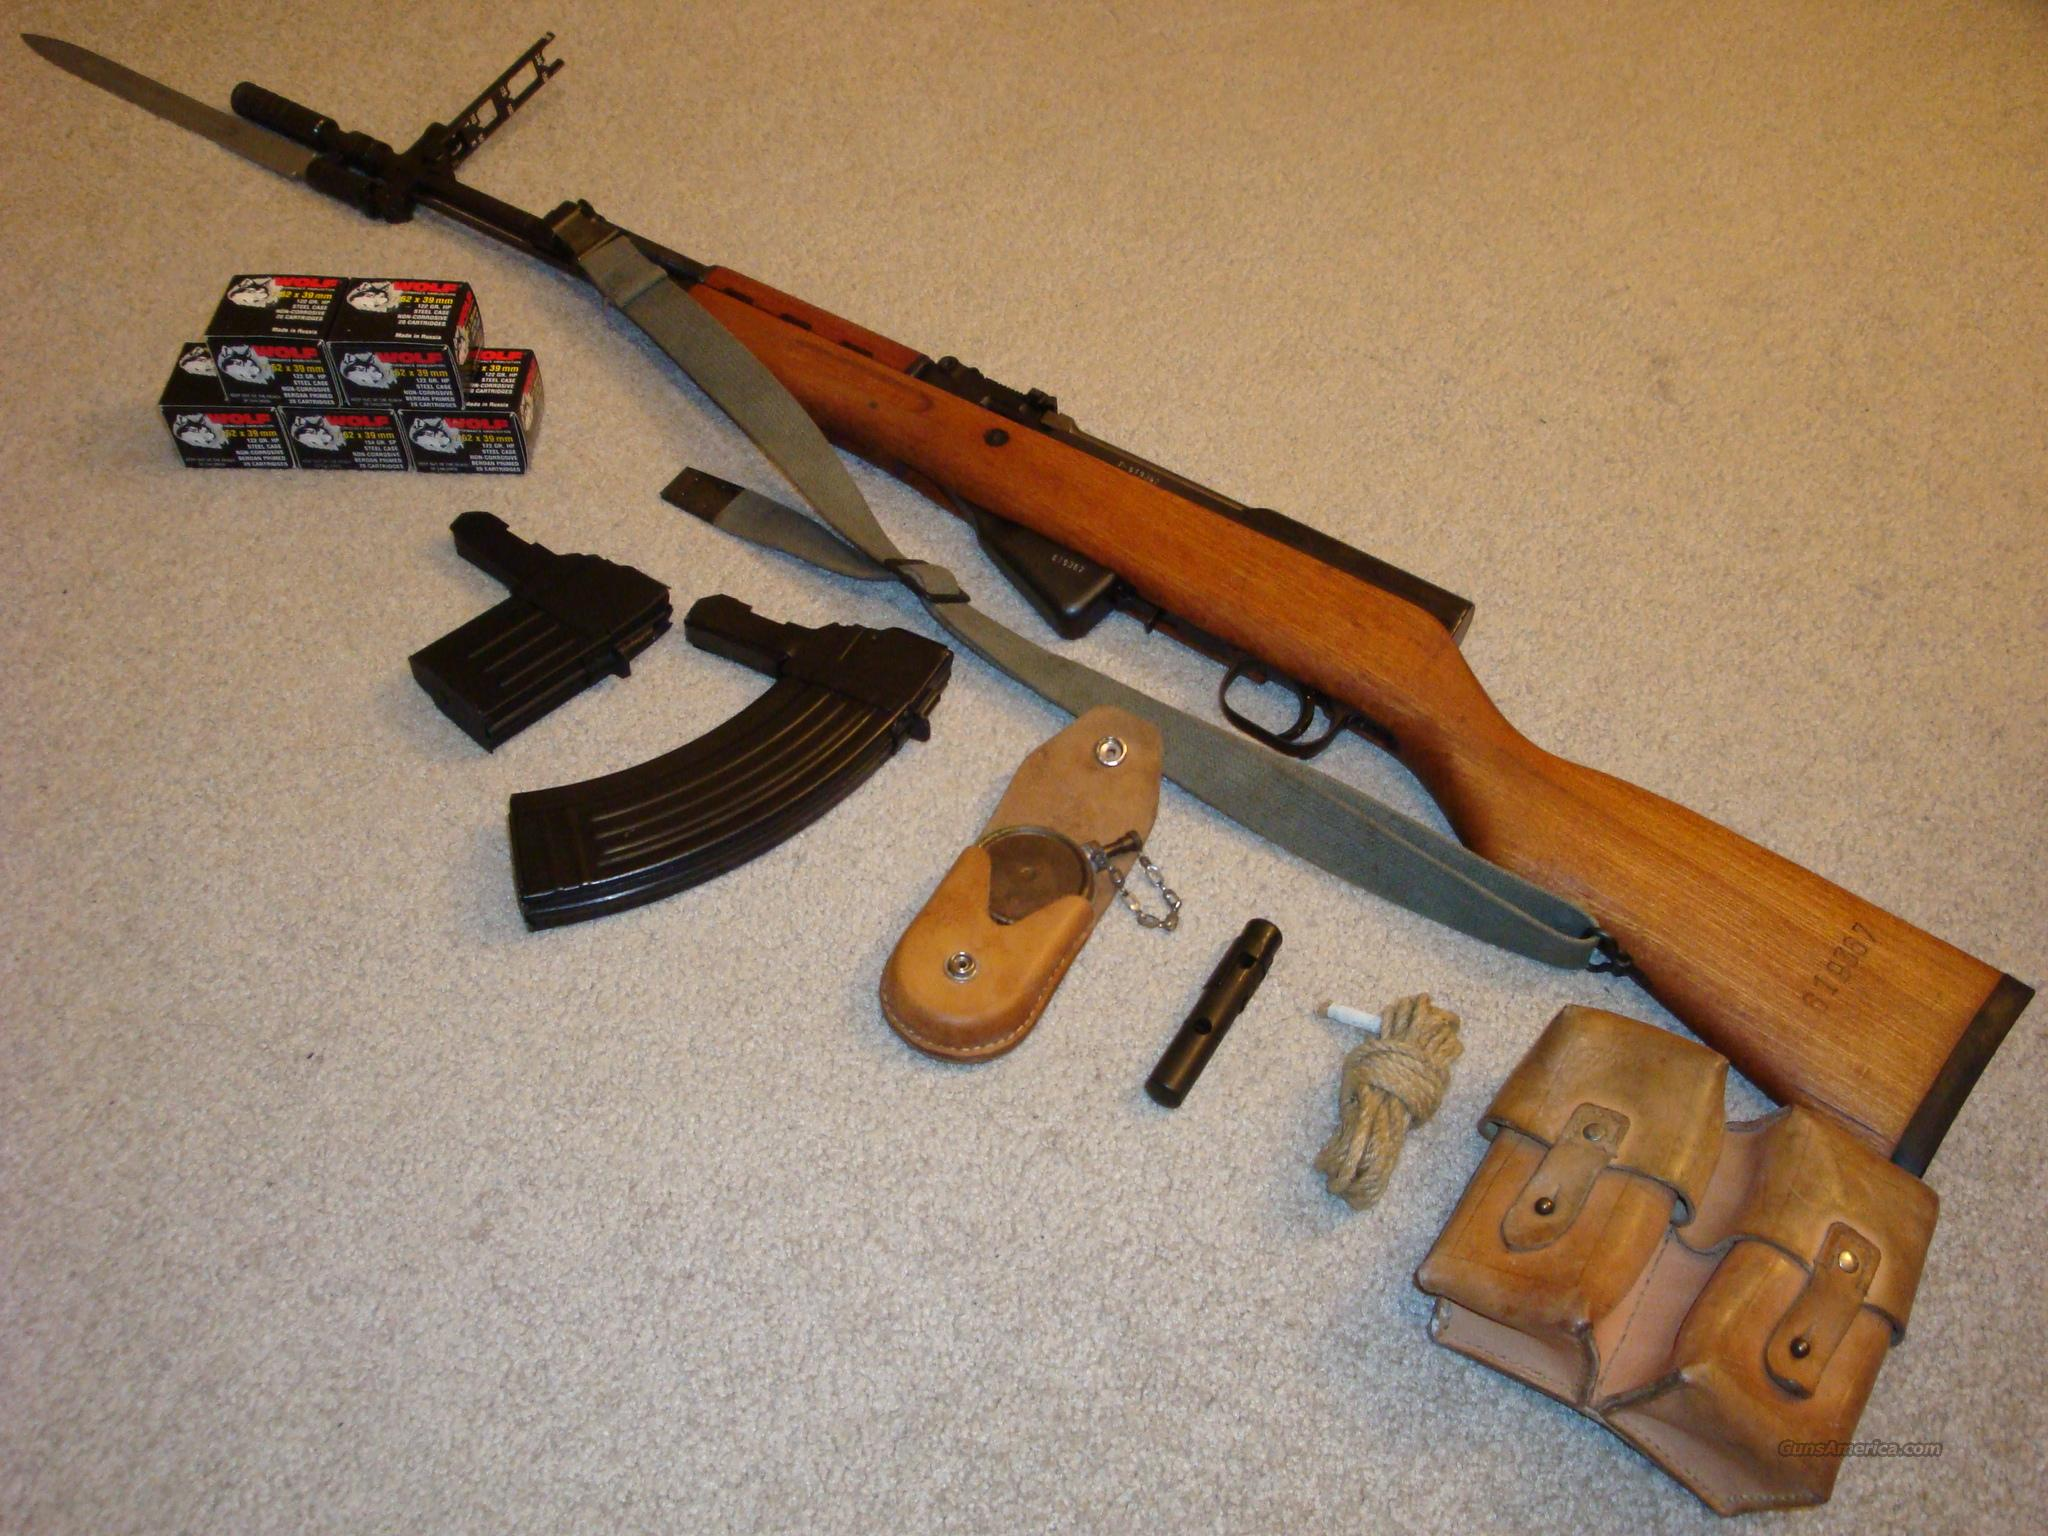 Yugoslavian SKS Assault/Sporting Rifle Military Surplus 7.62x39 w/ Original Accessories, (2) High Capacity Magazines, and 100 Rounds of Wolf 7.62x39 Ammo  Guns > Rifles > Norinco Rifles